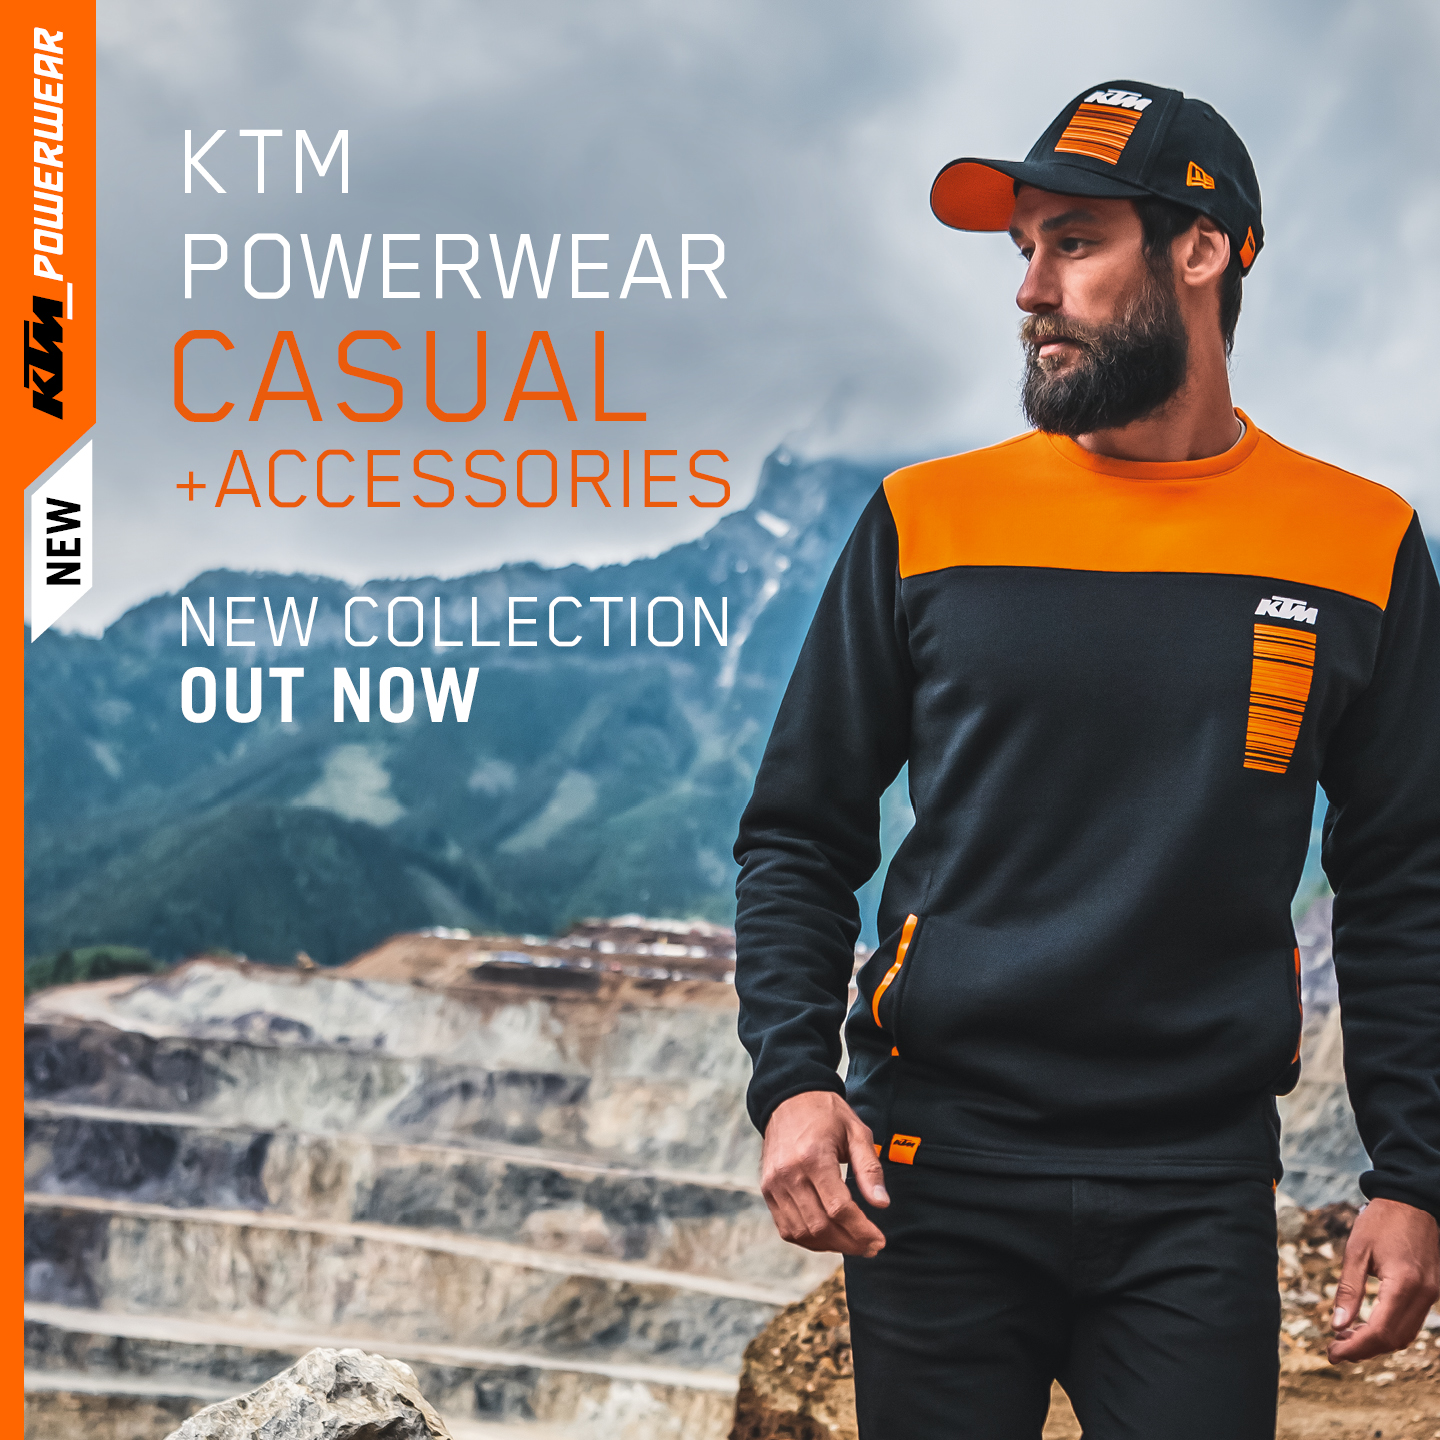 KTM POWERWEAR CASUAL & ACCESSORIES 2020: NEUE KOLLEKTION